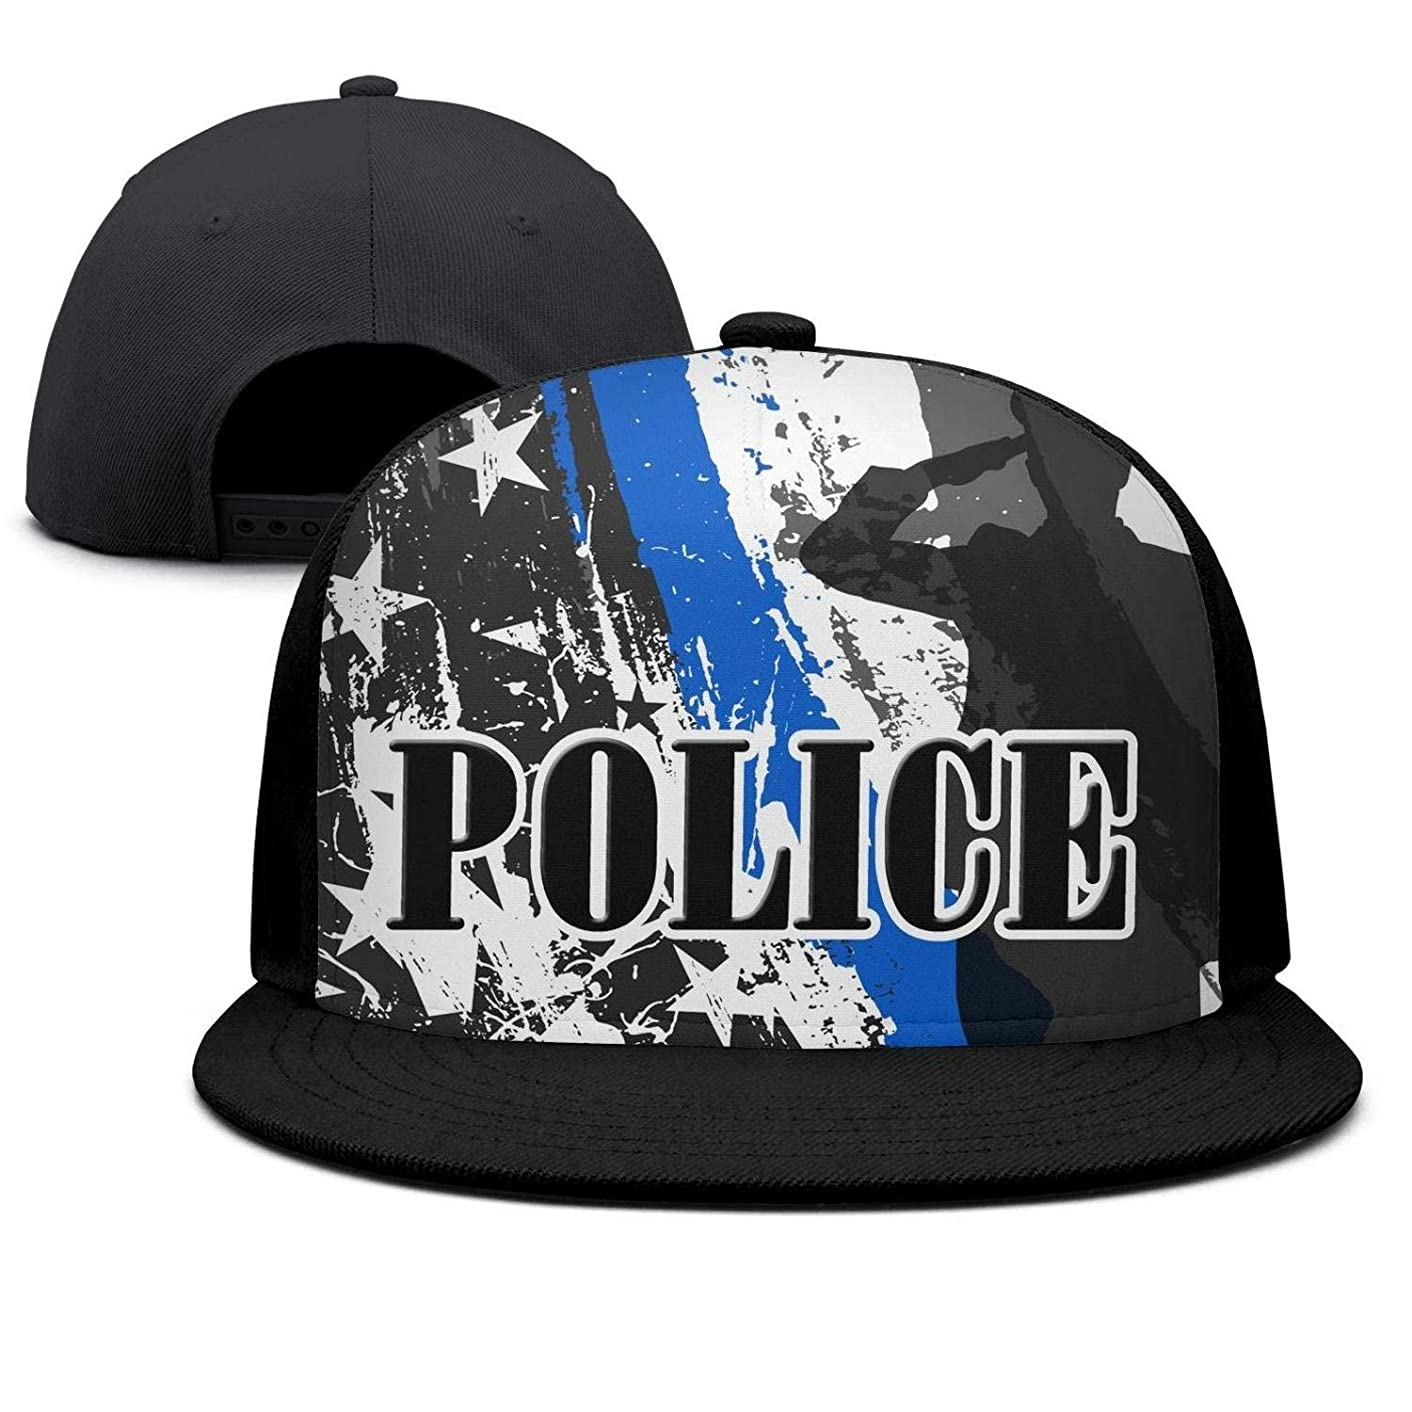 wasupyo Thin Blue line Police Flag Snapback Hats for Men Cool Baseball Cap